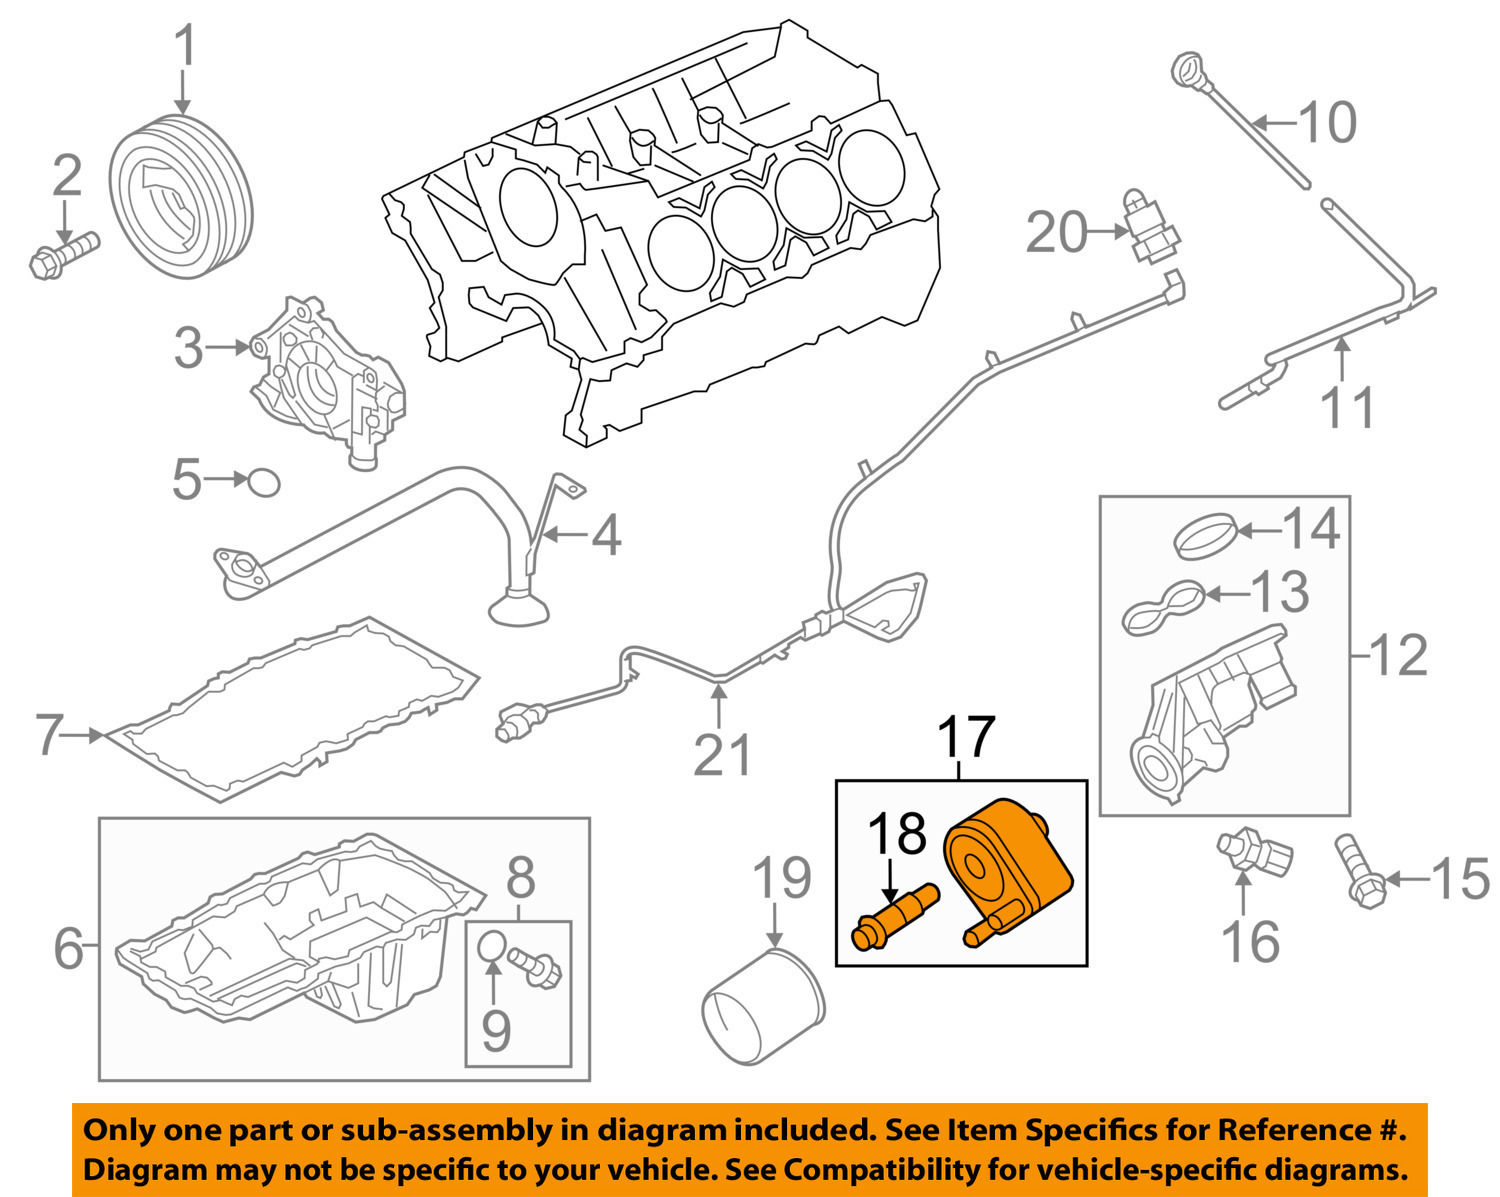 2010 ford f 150 engine parts diagram custom wiring diagram u2022 rh littlewaves co 2010 ford f 150 engine parts diagram 2010 f150 4.6 engine diagram